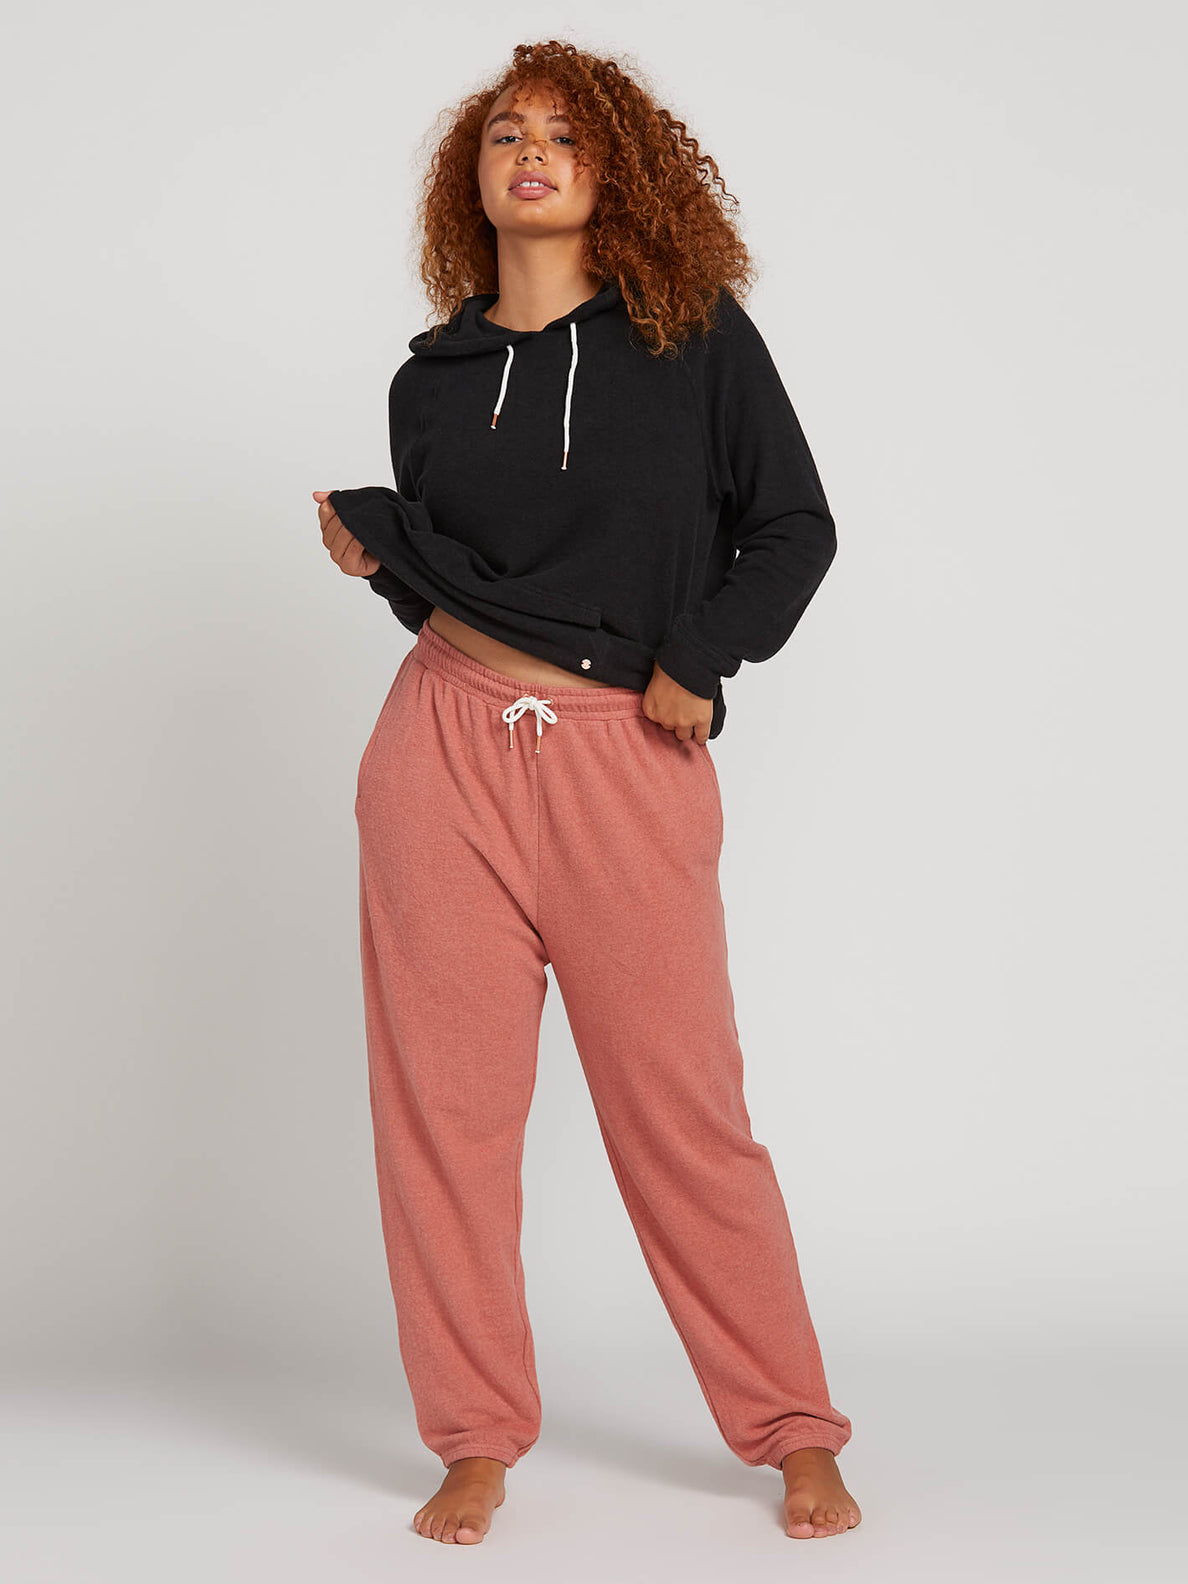 Lived In Lounge Fleece Pants In Mauve, Front Plus Size View